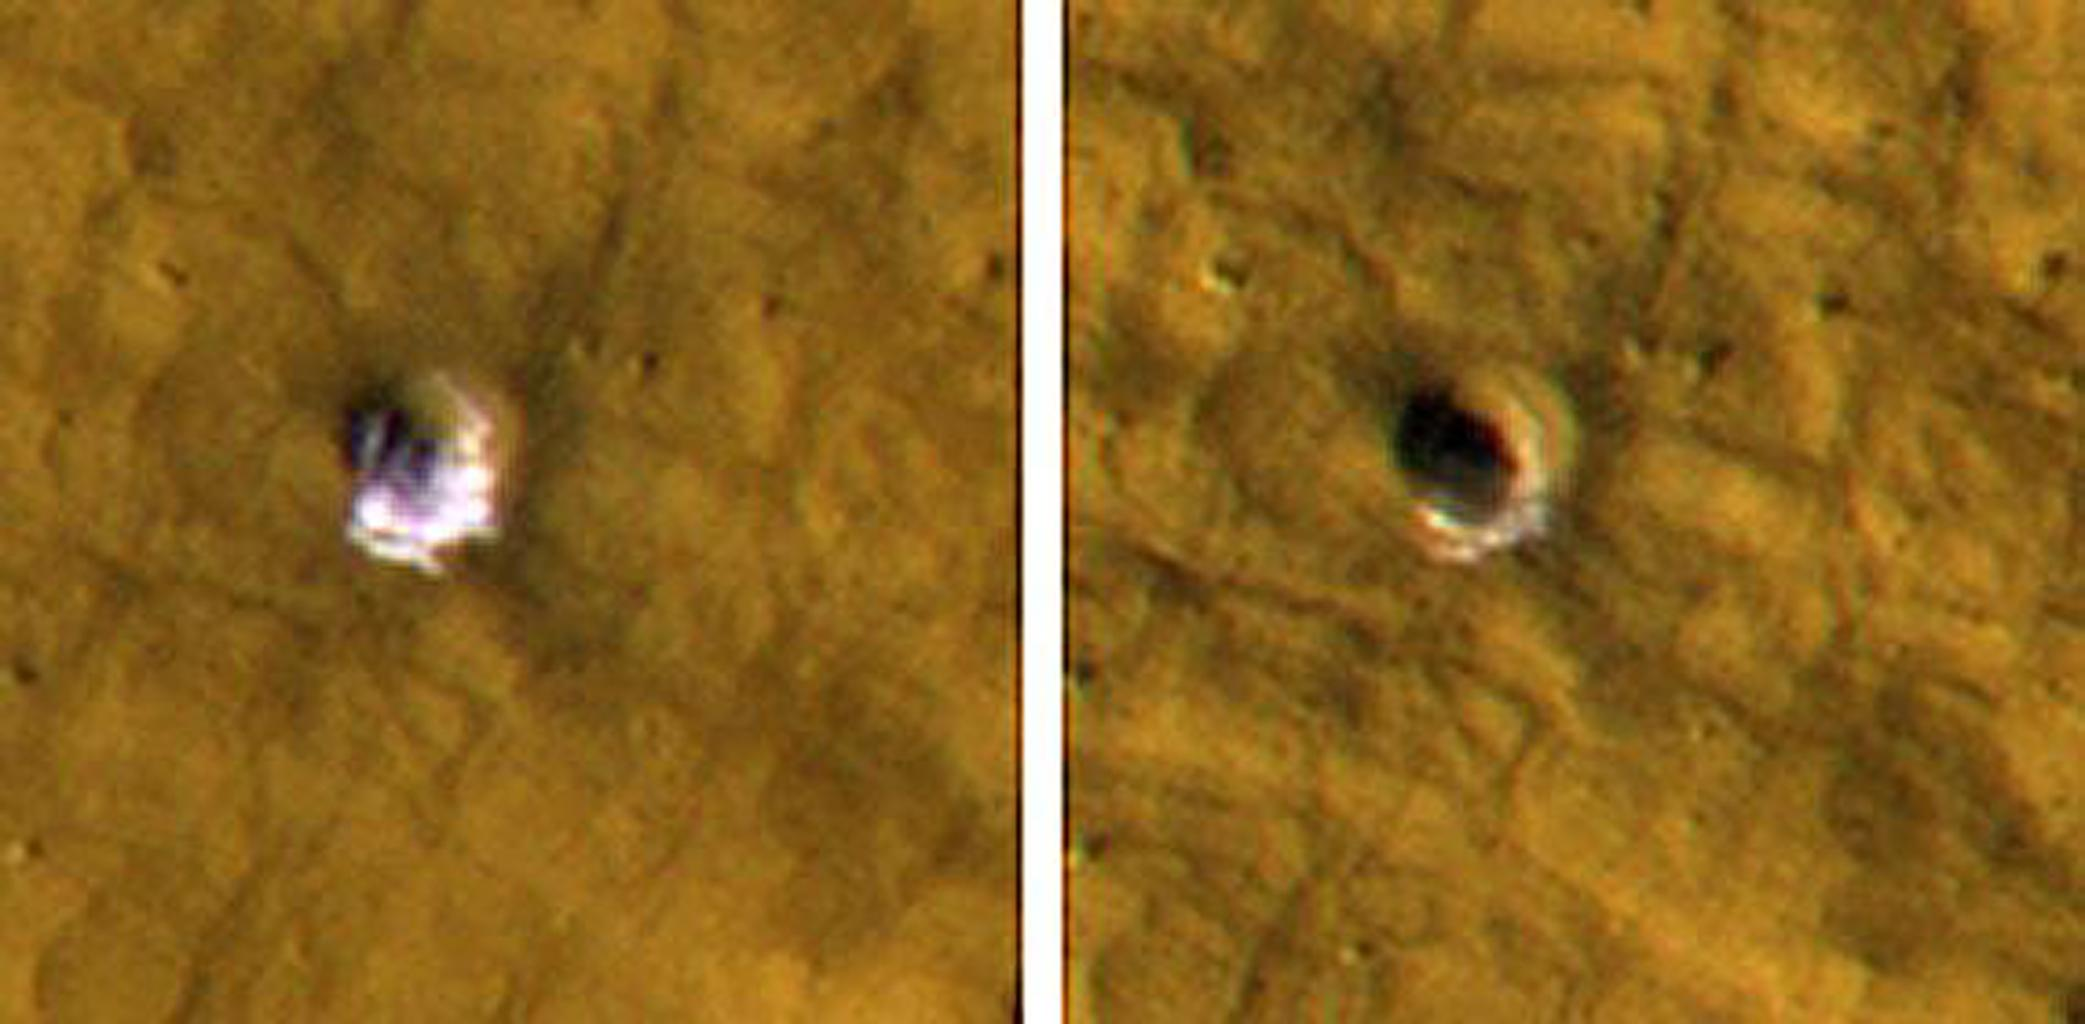 NASA's Mars Reconnaissance Orbiter reveals underground ice exposed by impact cratering. The impact that dug the crater excavated water ice from beneath the surface.